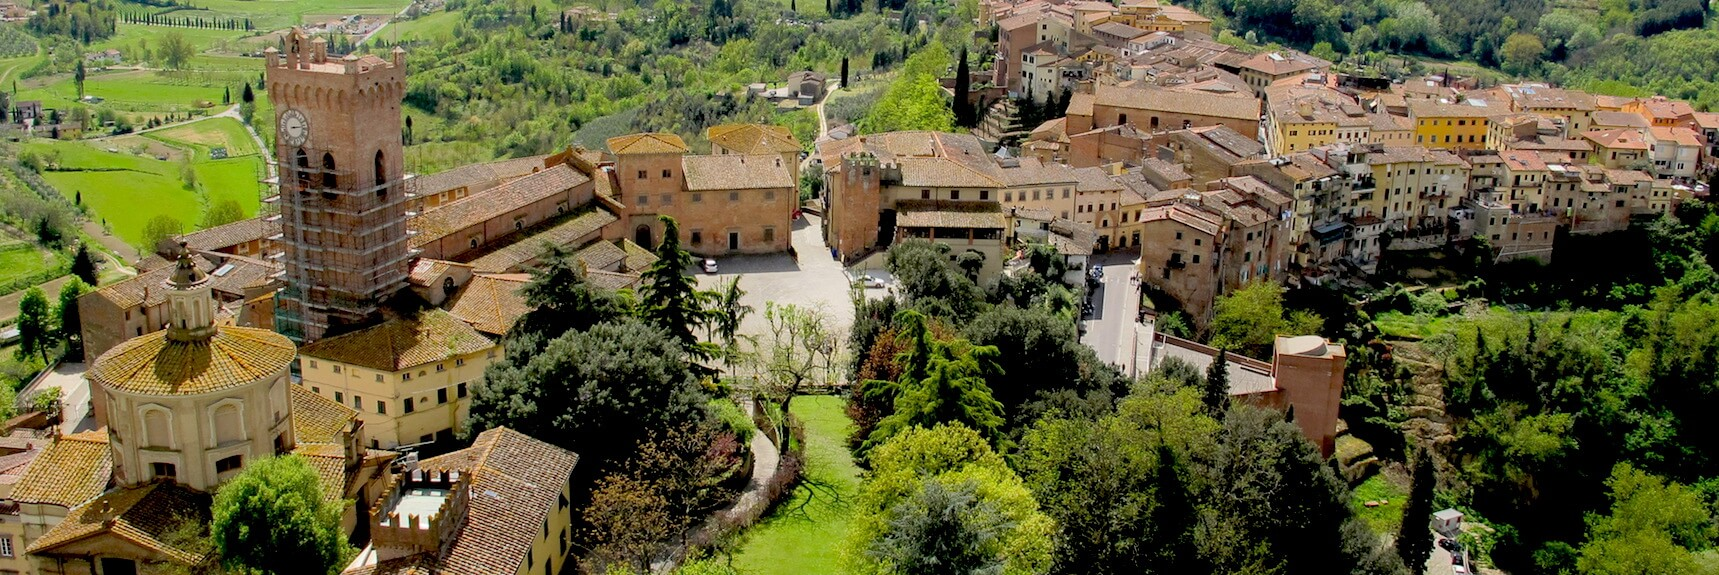 San Miniato Panoramic view Tuscany